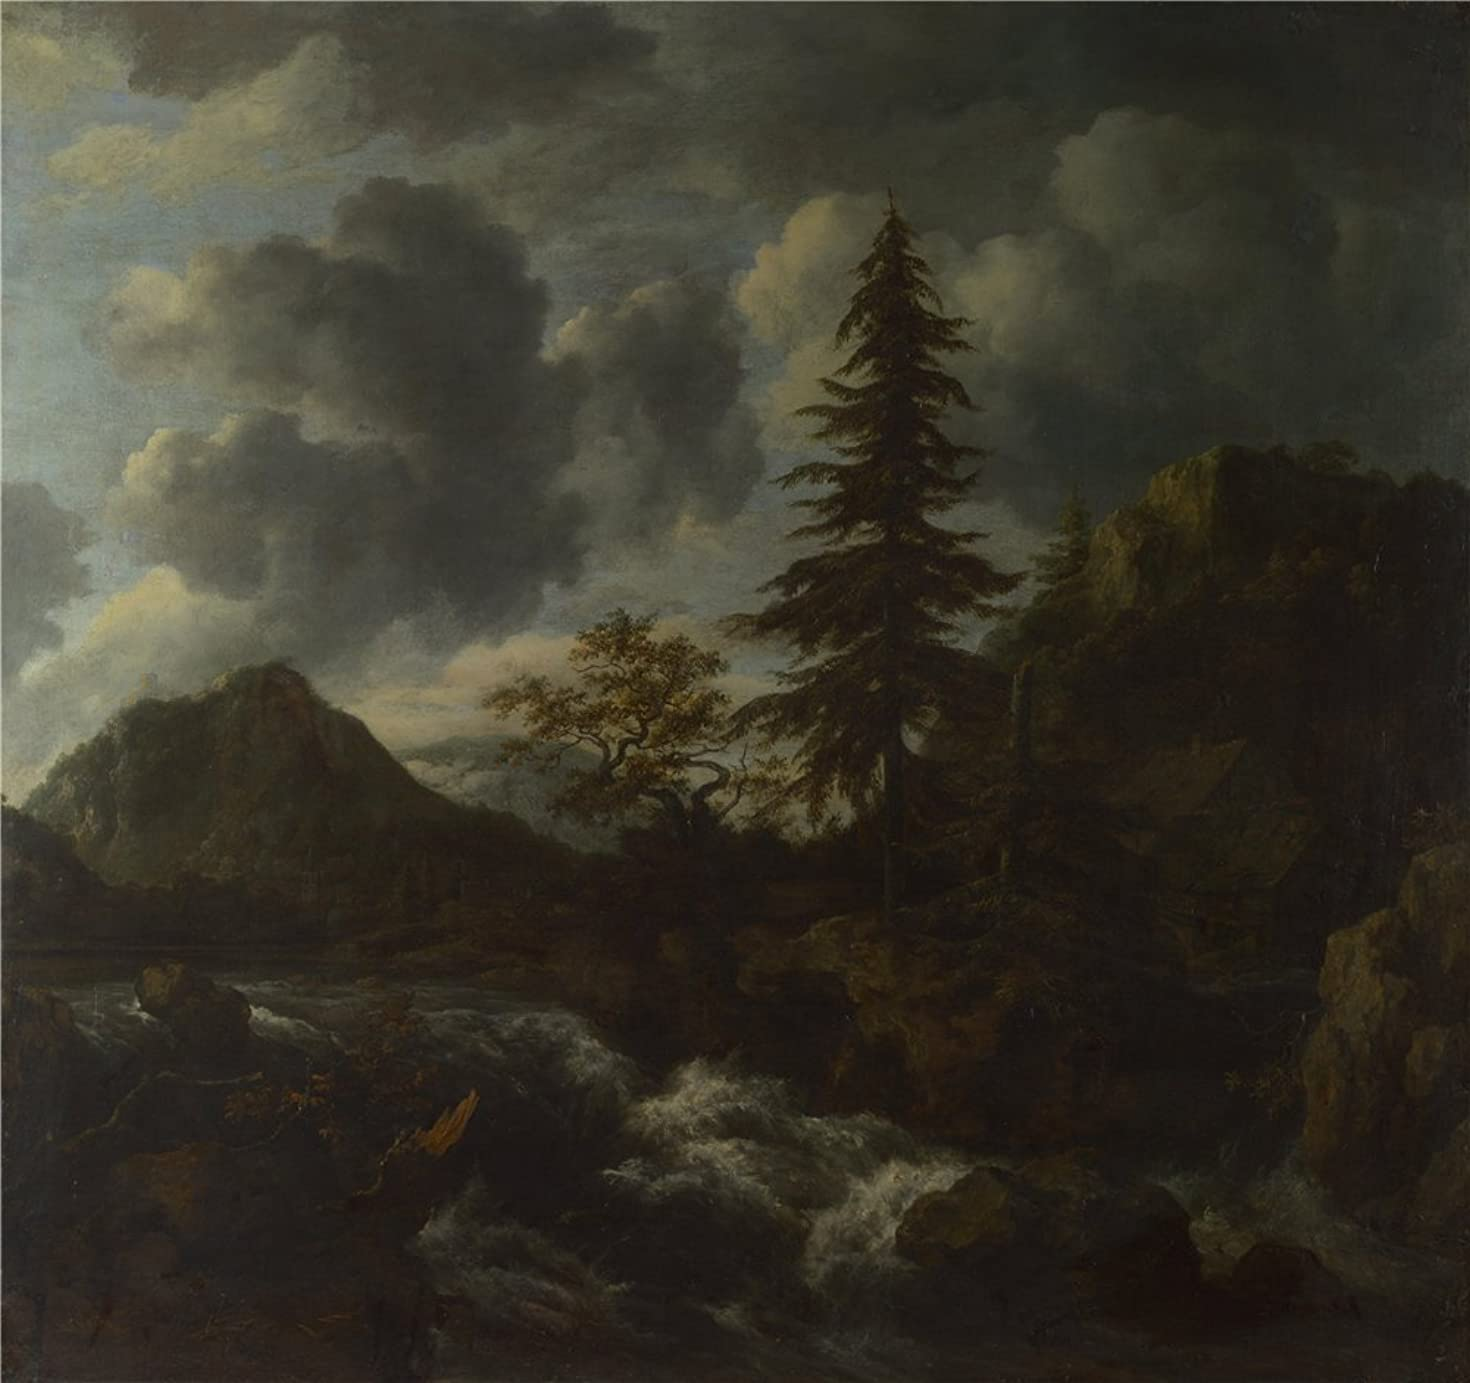 The High Quality Polyster Canvas Of Oil Painting 'Jacob Van Ruisdael A Torrent In A Mountainous Landscape ' ,size: 16 X 17 Inch / 41 X 43 Cm ,this Imitations Art DecorativePrints On Canvas Is Fit For Nursery Artwork And Home Decoration And Gifts